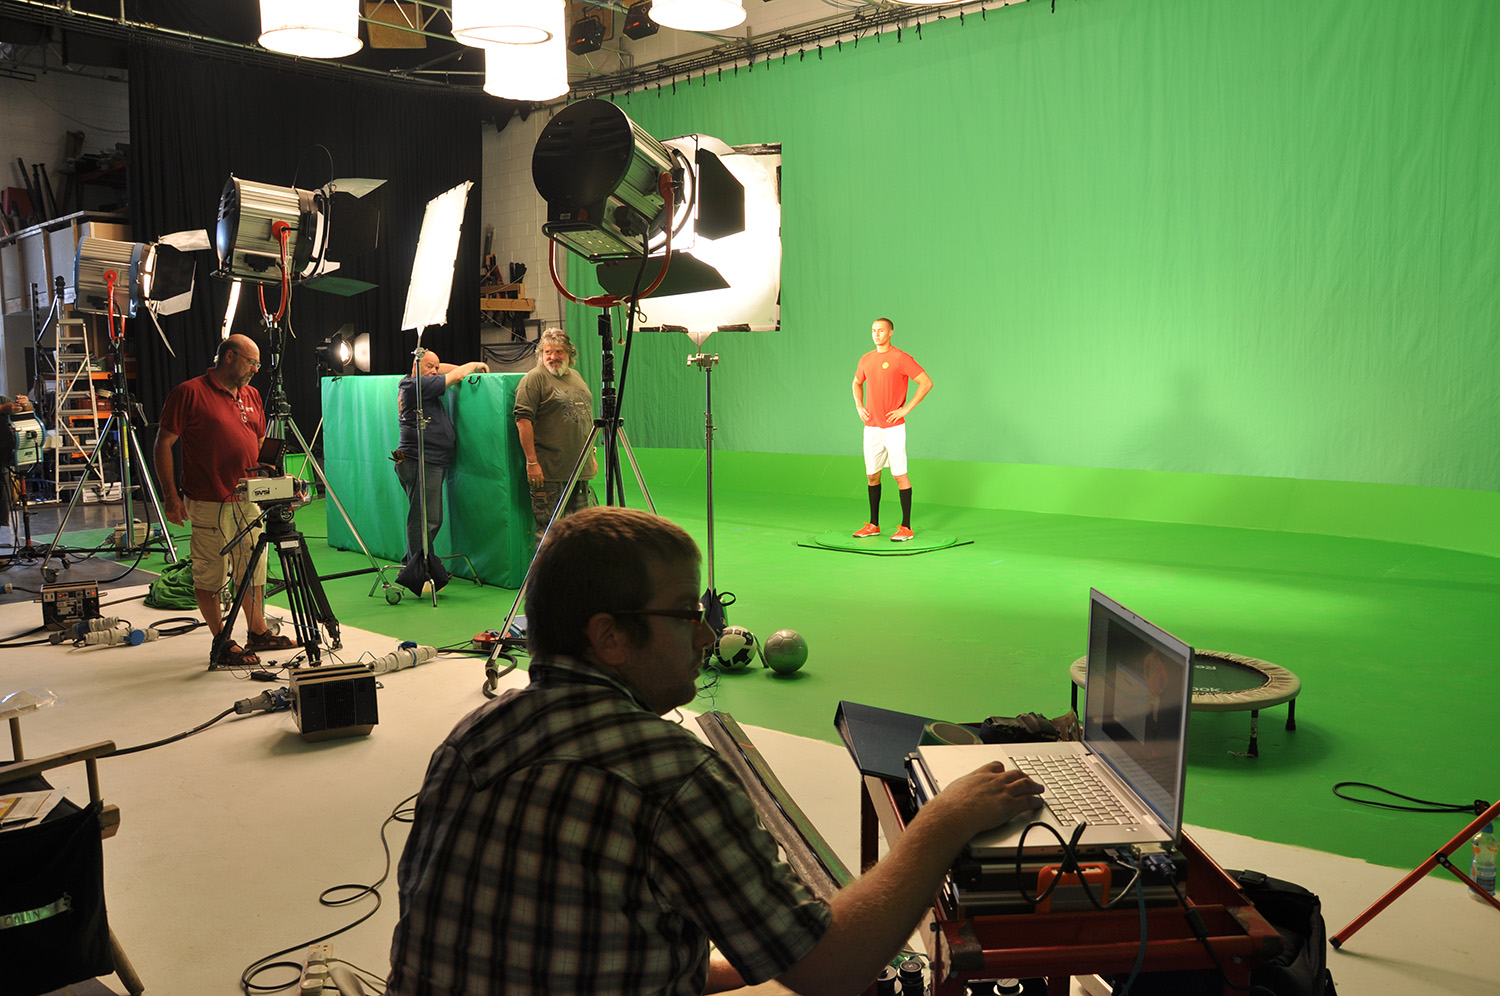 High speed camera filming against green screen.